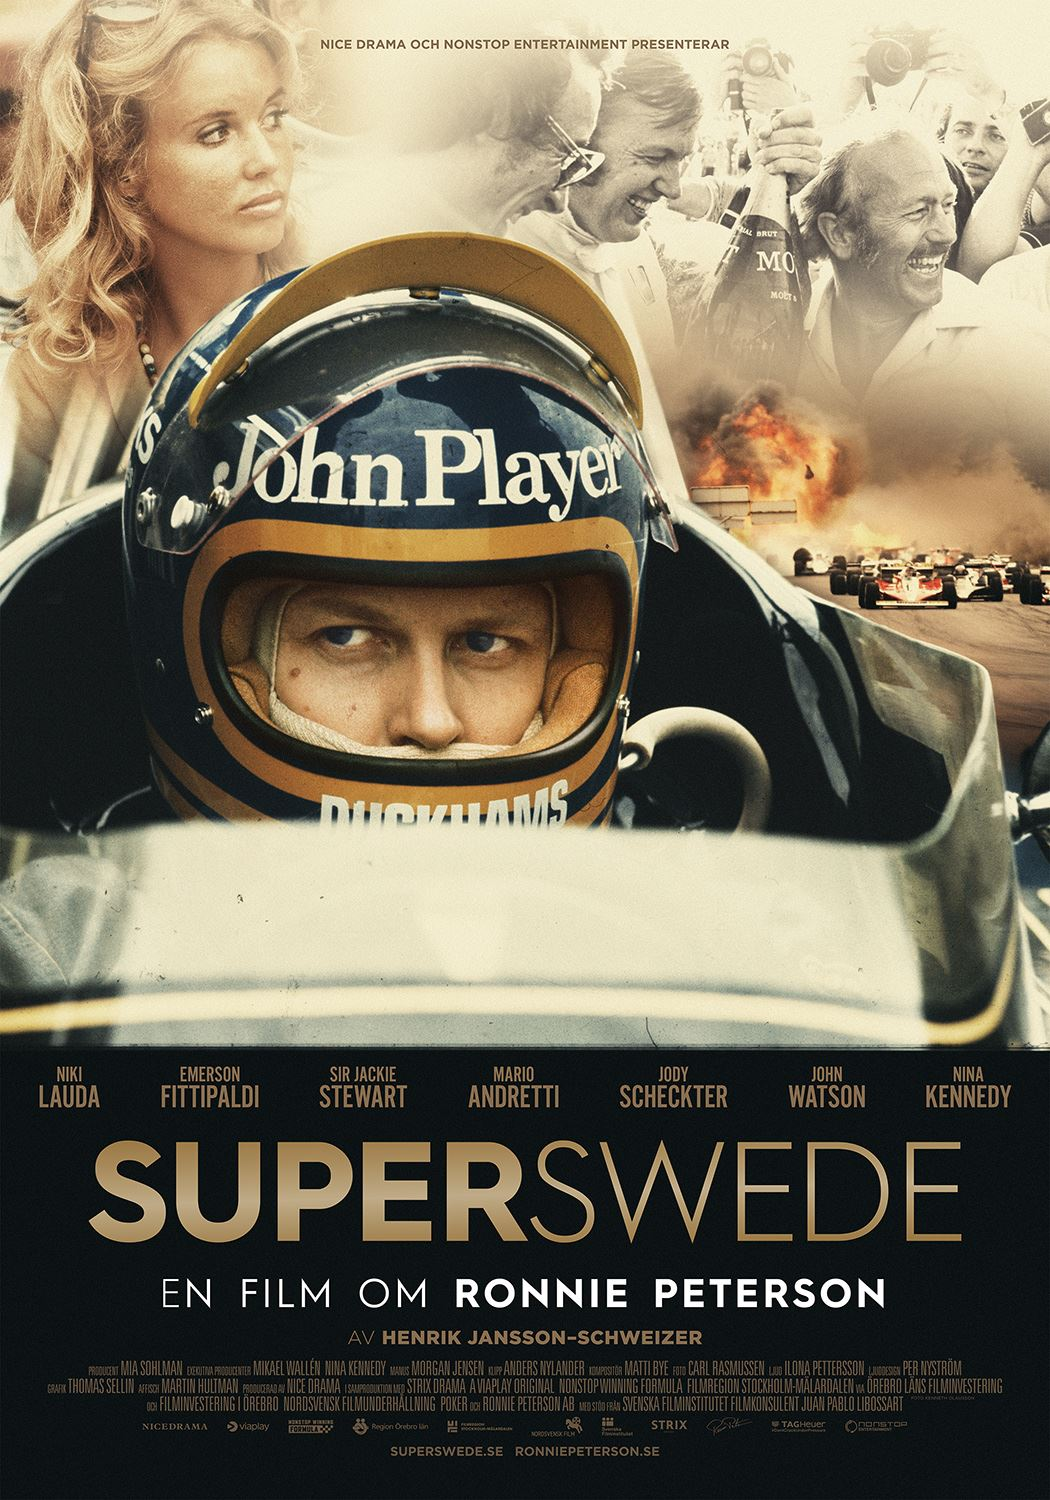 Bio: Superswede - Filmen om Ronnie Petersson